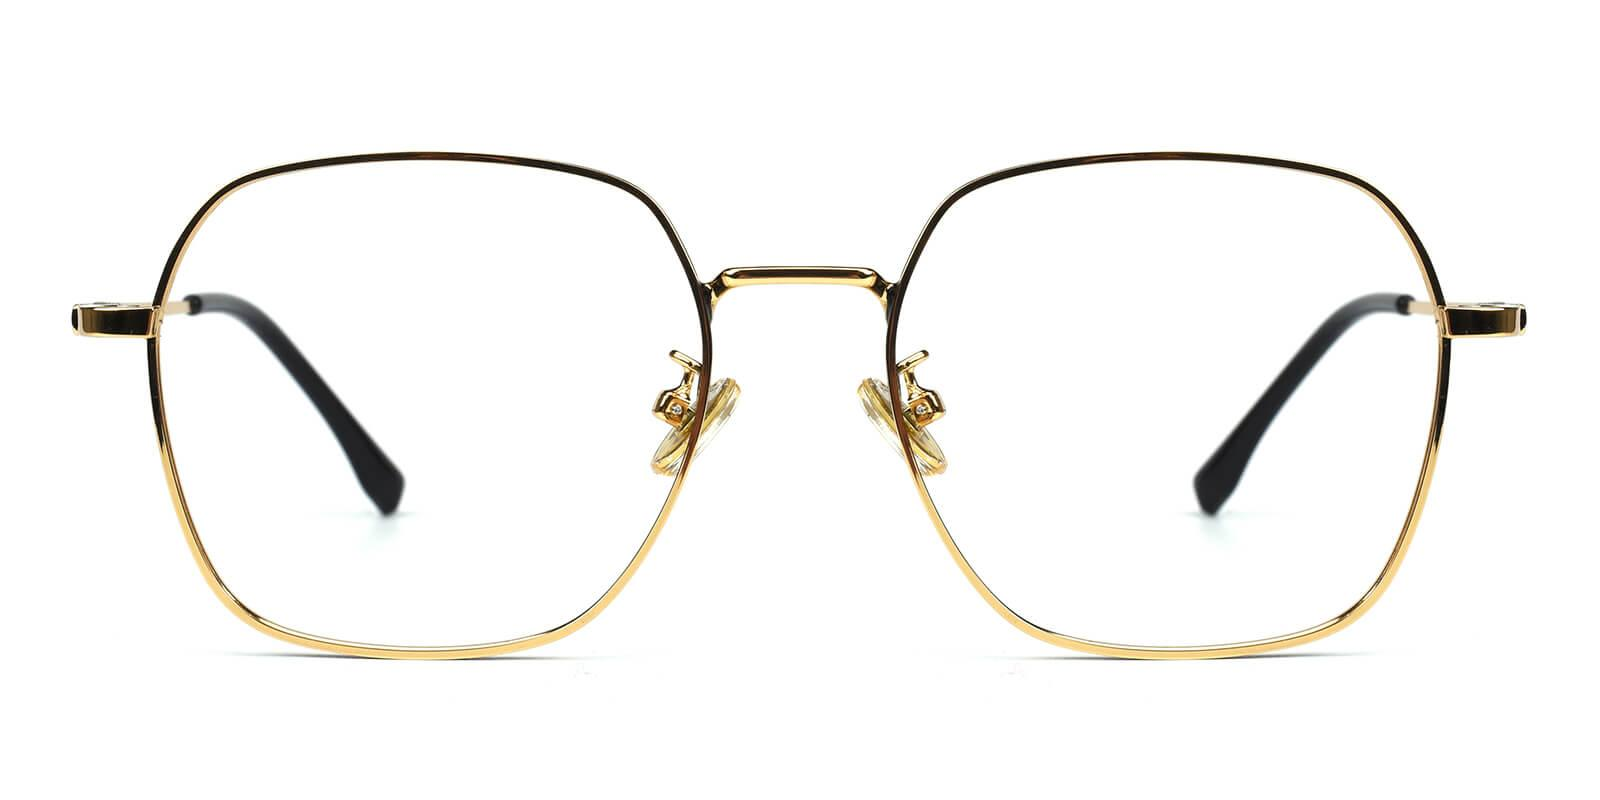 Vincoy-Gold-Square-Metal-Eyeglasses-additional2